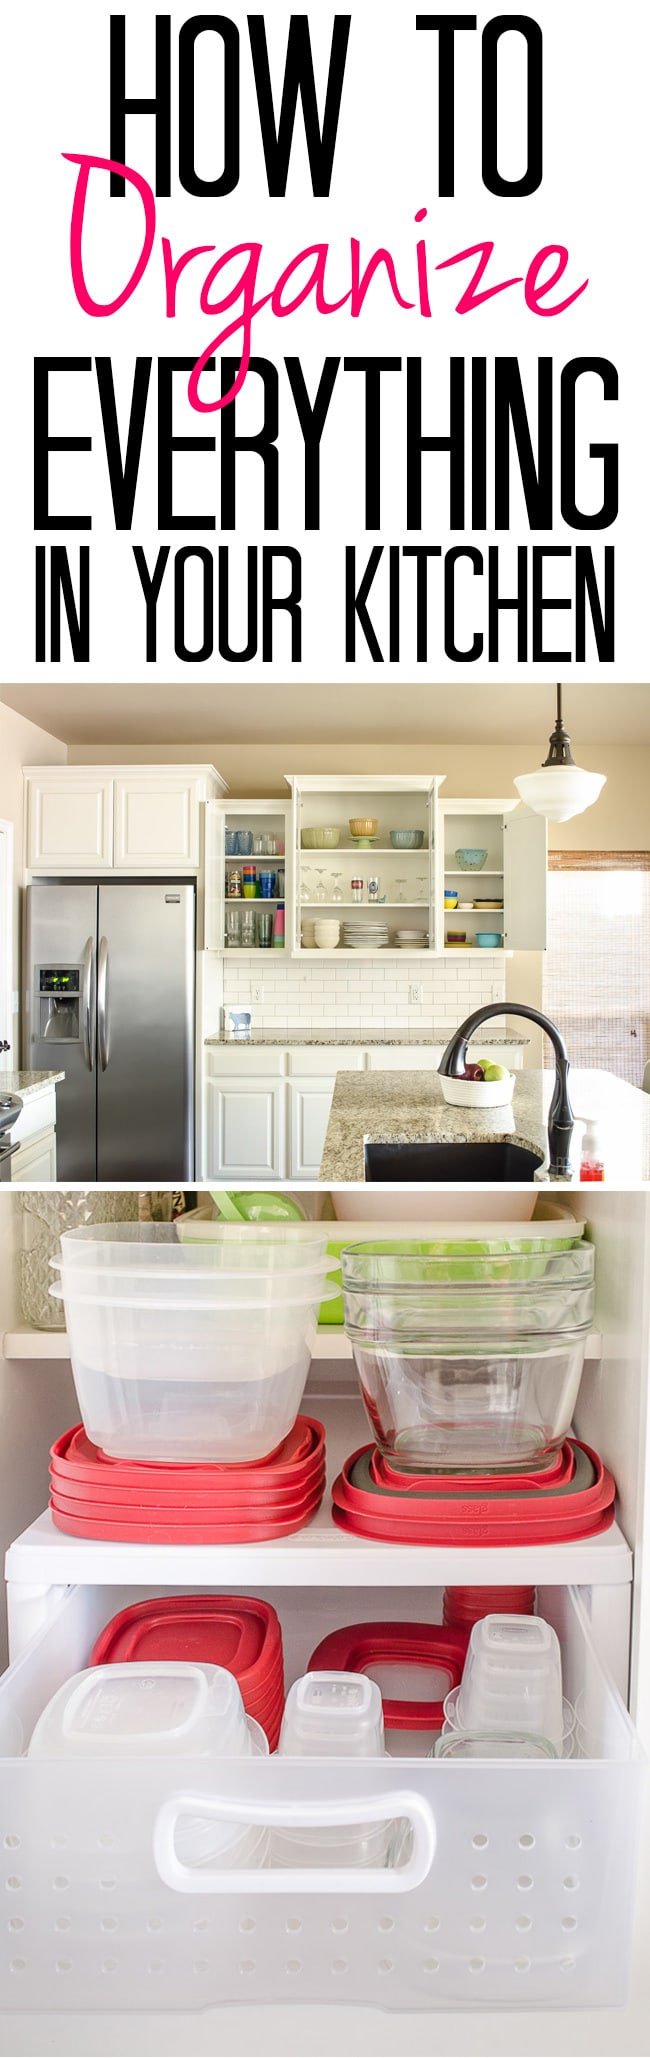 How to Organize Everything in Your Kitchen  Polished Habitat